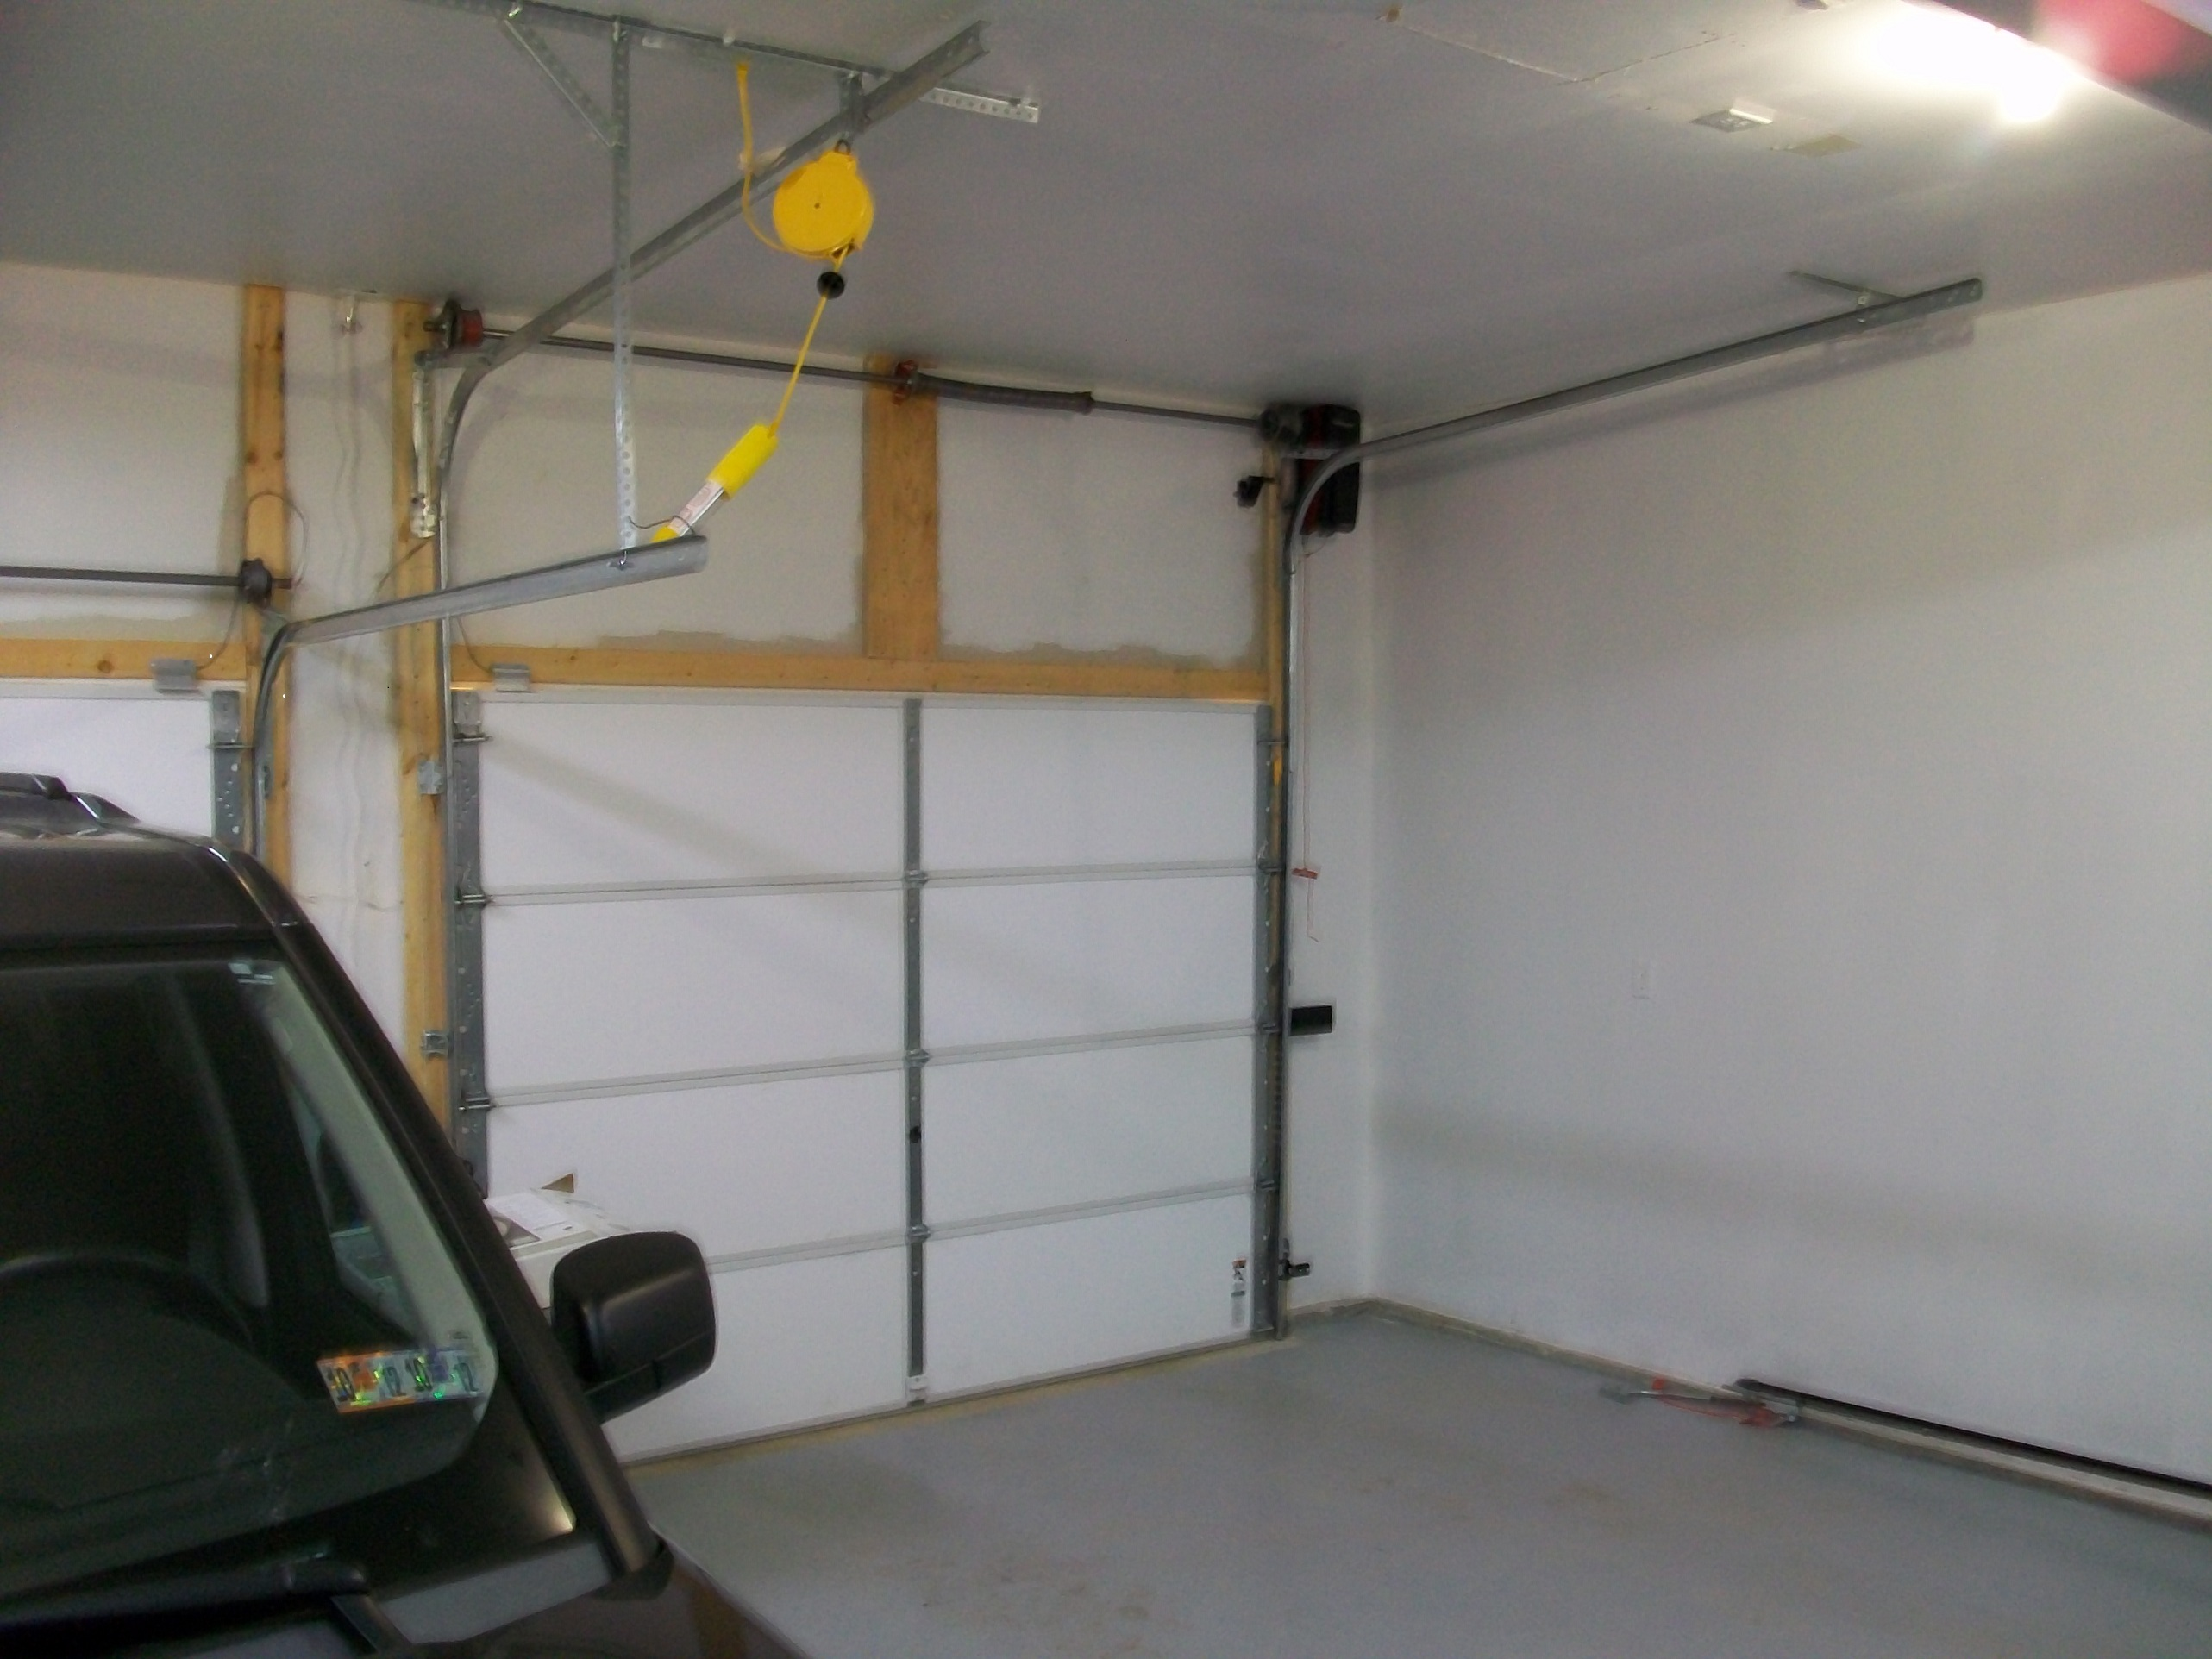 Genie garage door installation guide download free for Genie garage door